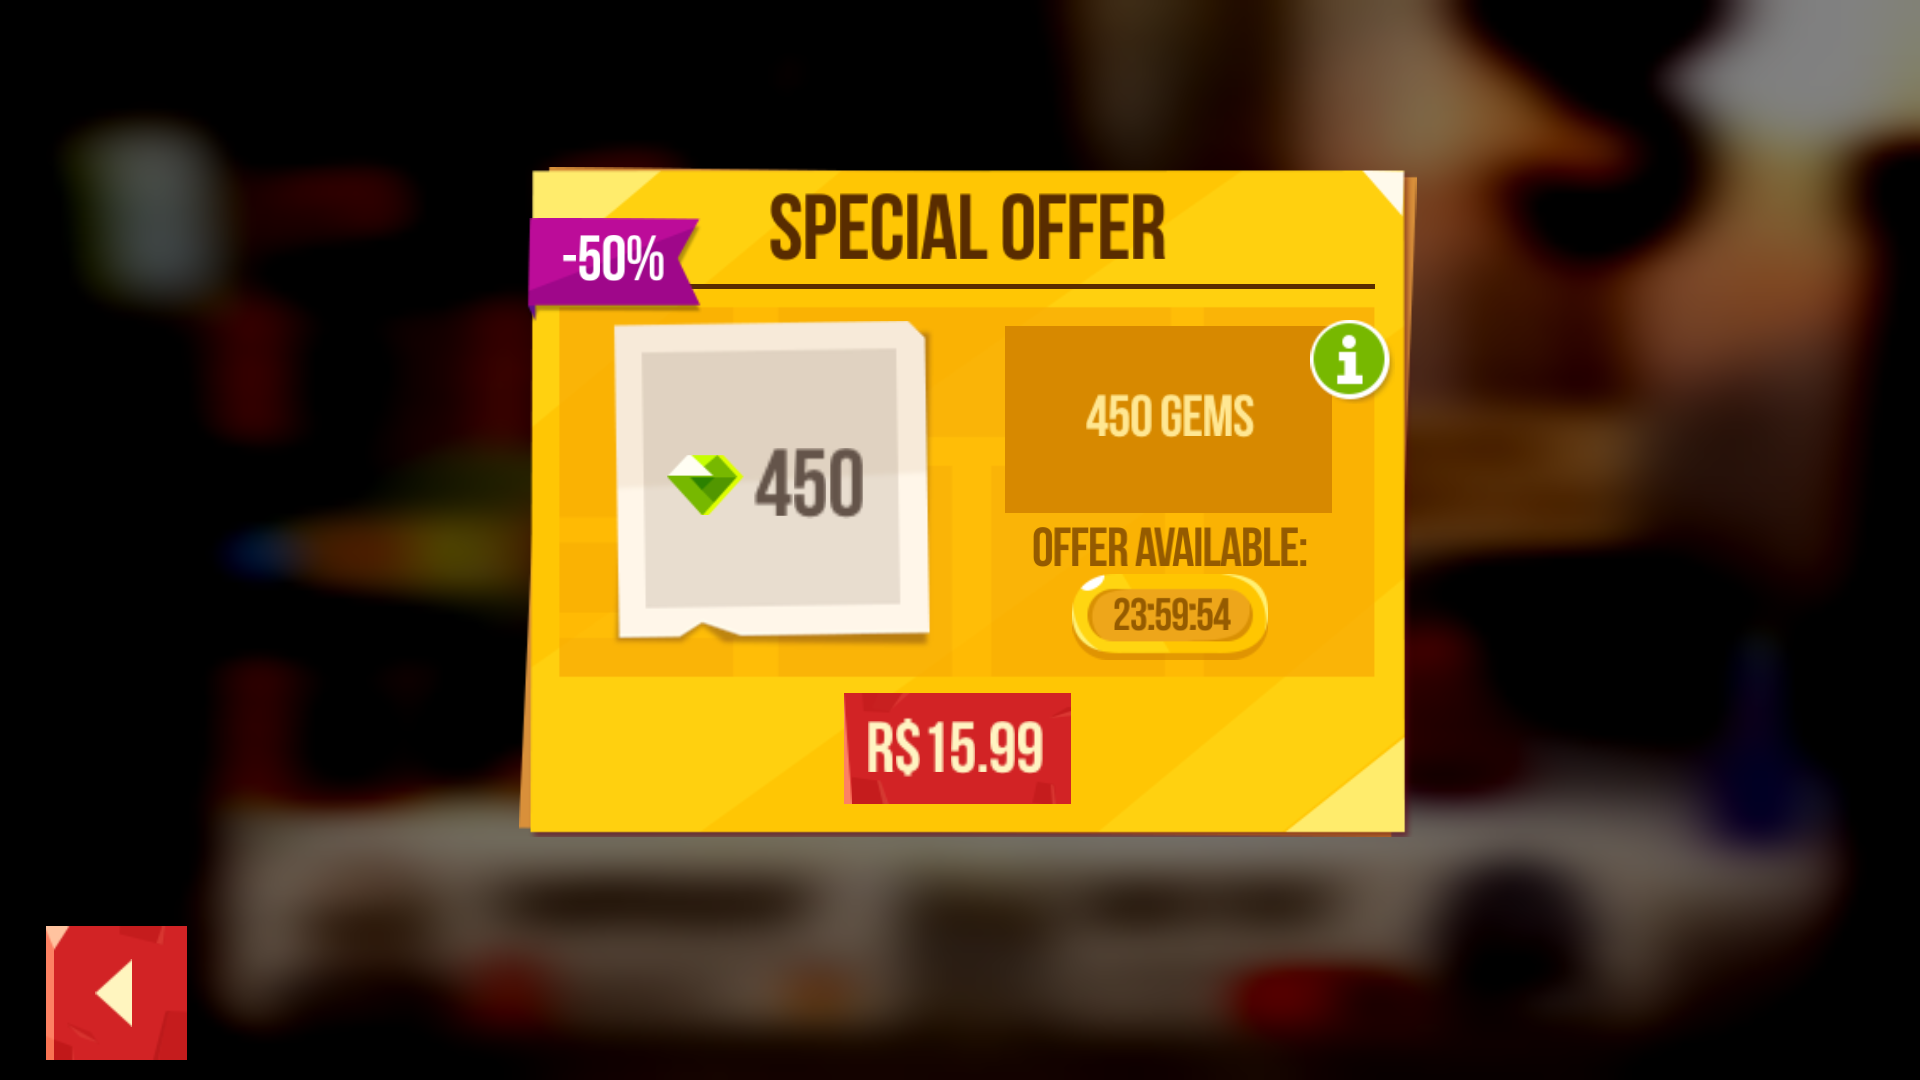 Special Offer Prompt